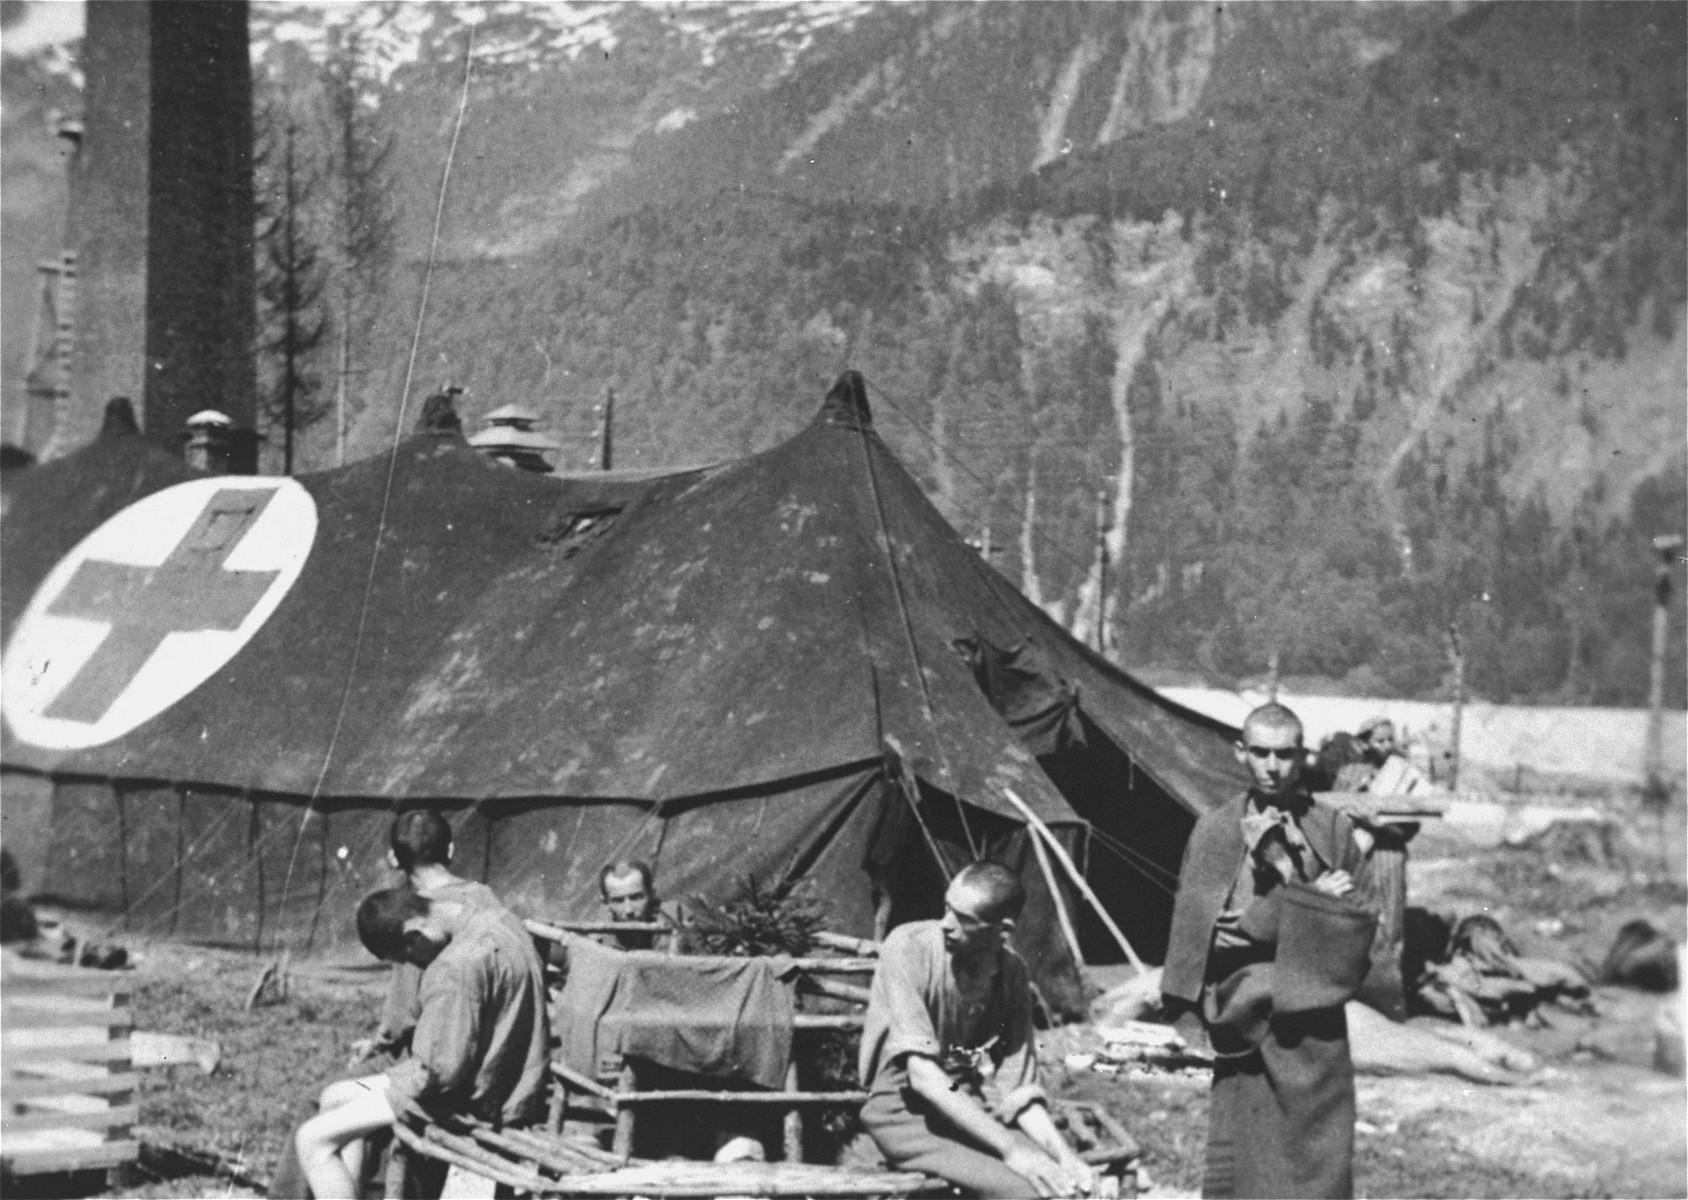 Survivors rest outside one of the tents of the 30th Field Hospital, set up by the U.S. Army in the Ebensee concentration camp.